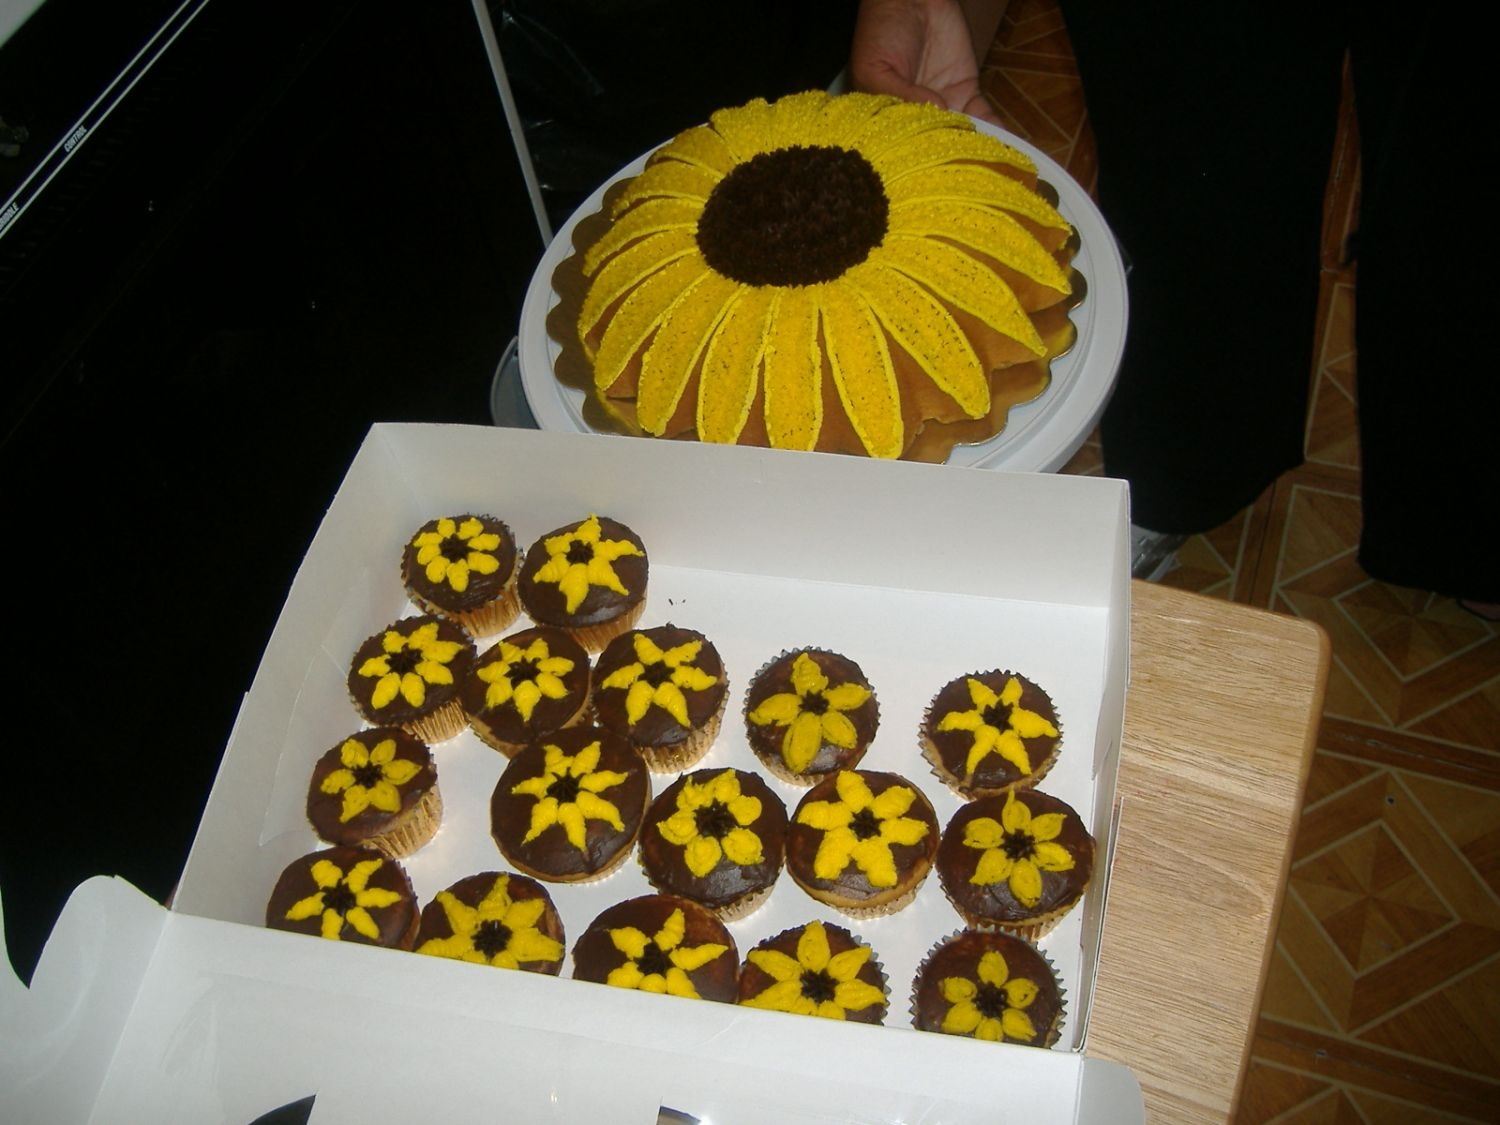 Sunflower Theme. This was a cake I made for my daughter's 10th b-day. Hope everyone enjoys!